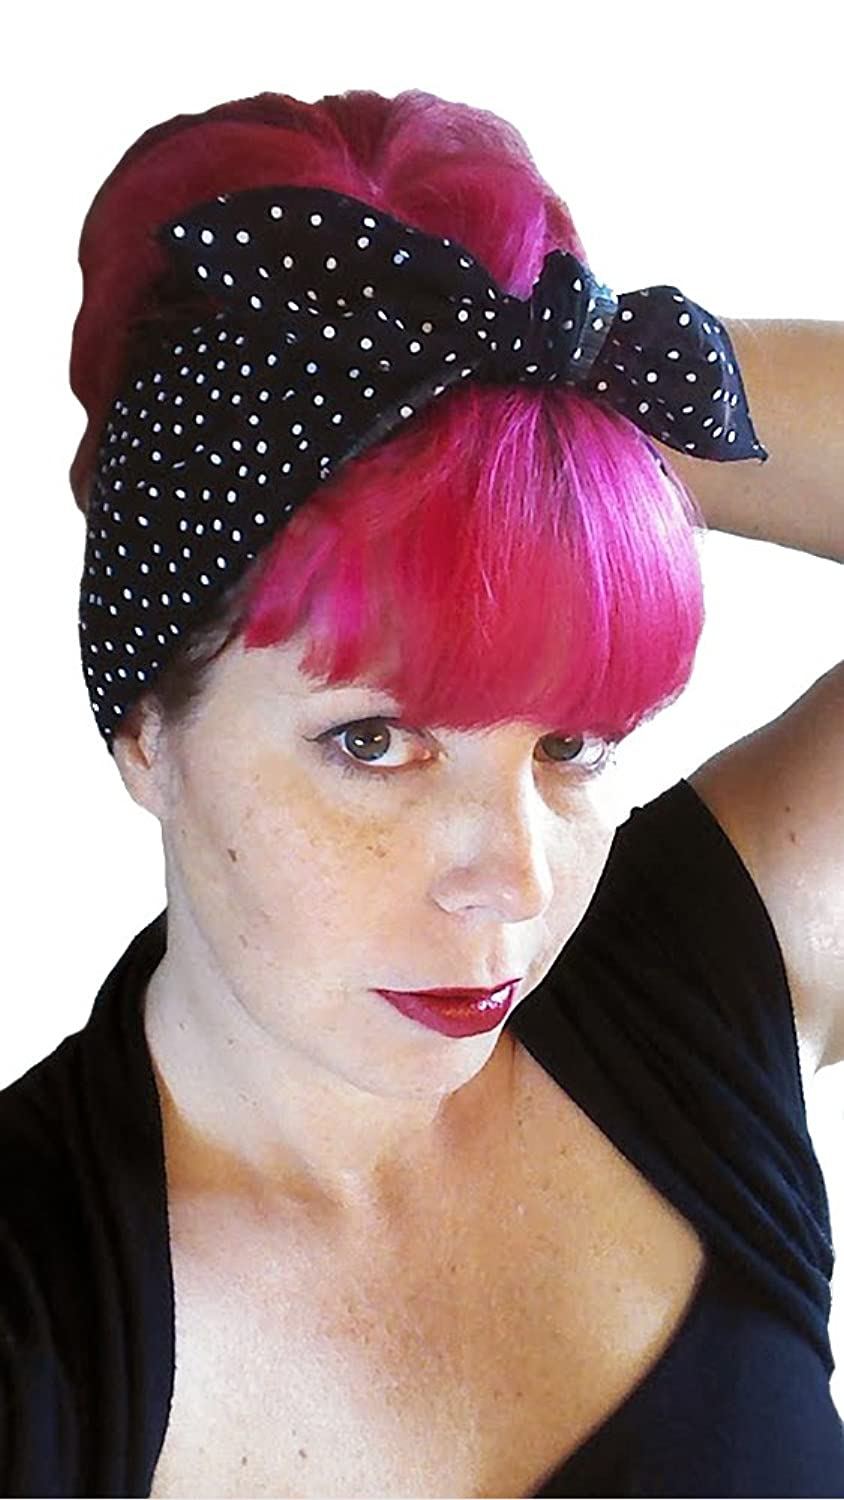 Shop 1950s Hair Accessories Spellbound Bows Black and White Tiny Polka Dot Wide One Sided Headwrap $7.99 AT vintagedancer.com